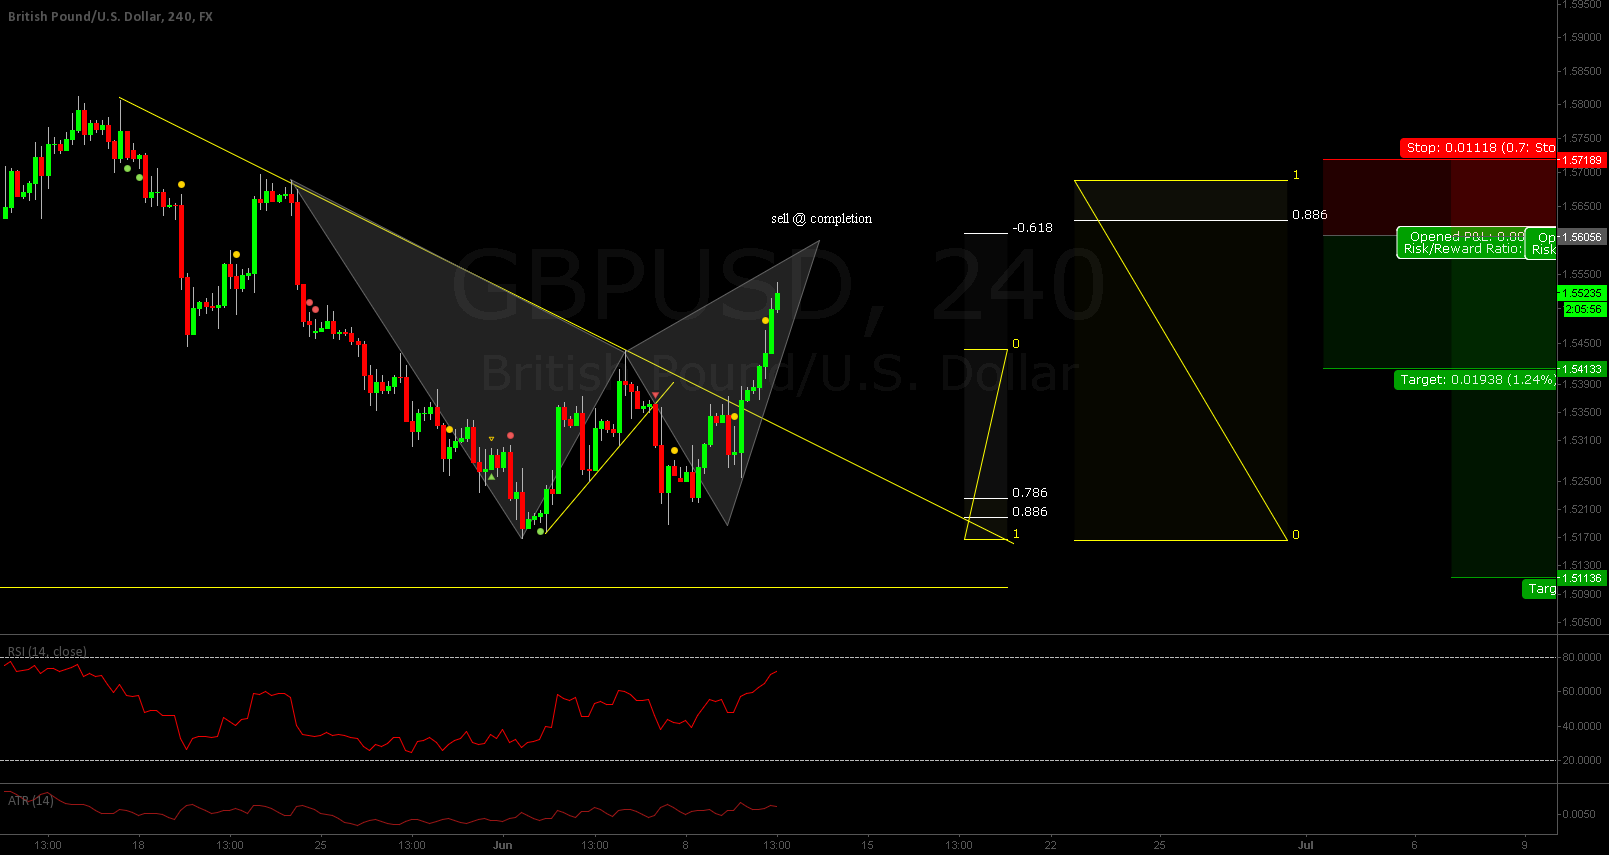 GBPUSD SELL @ COMPLETION OF PATTERN